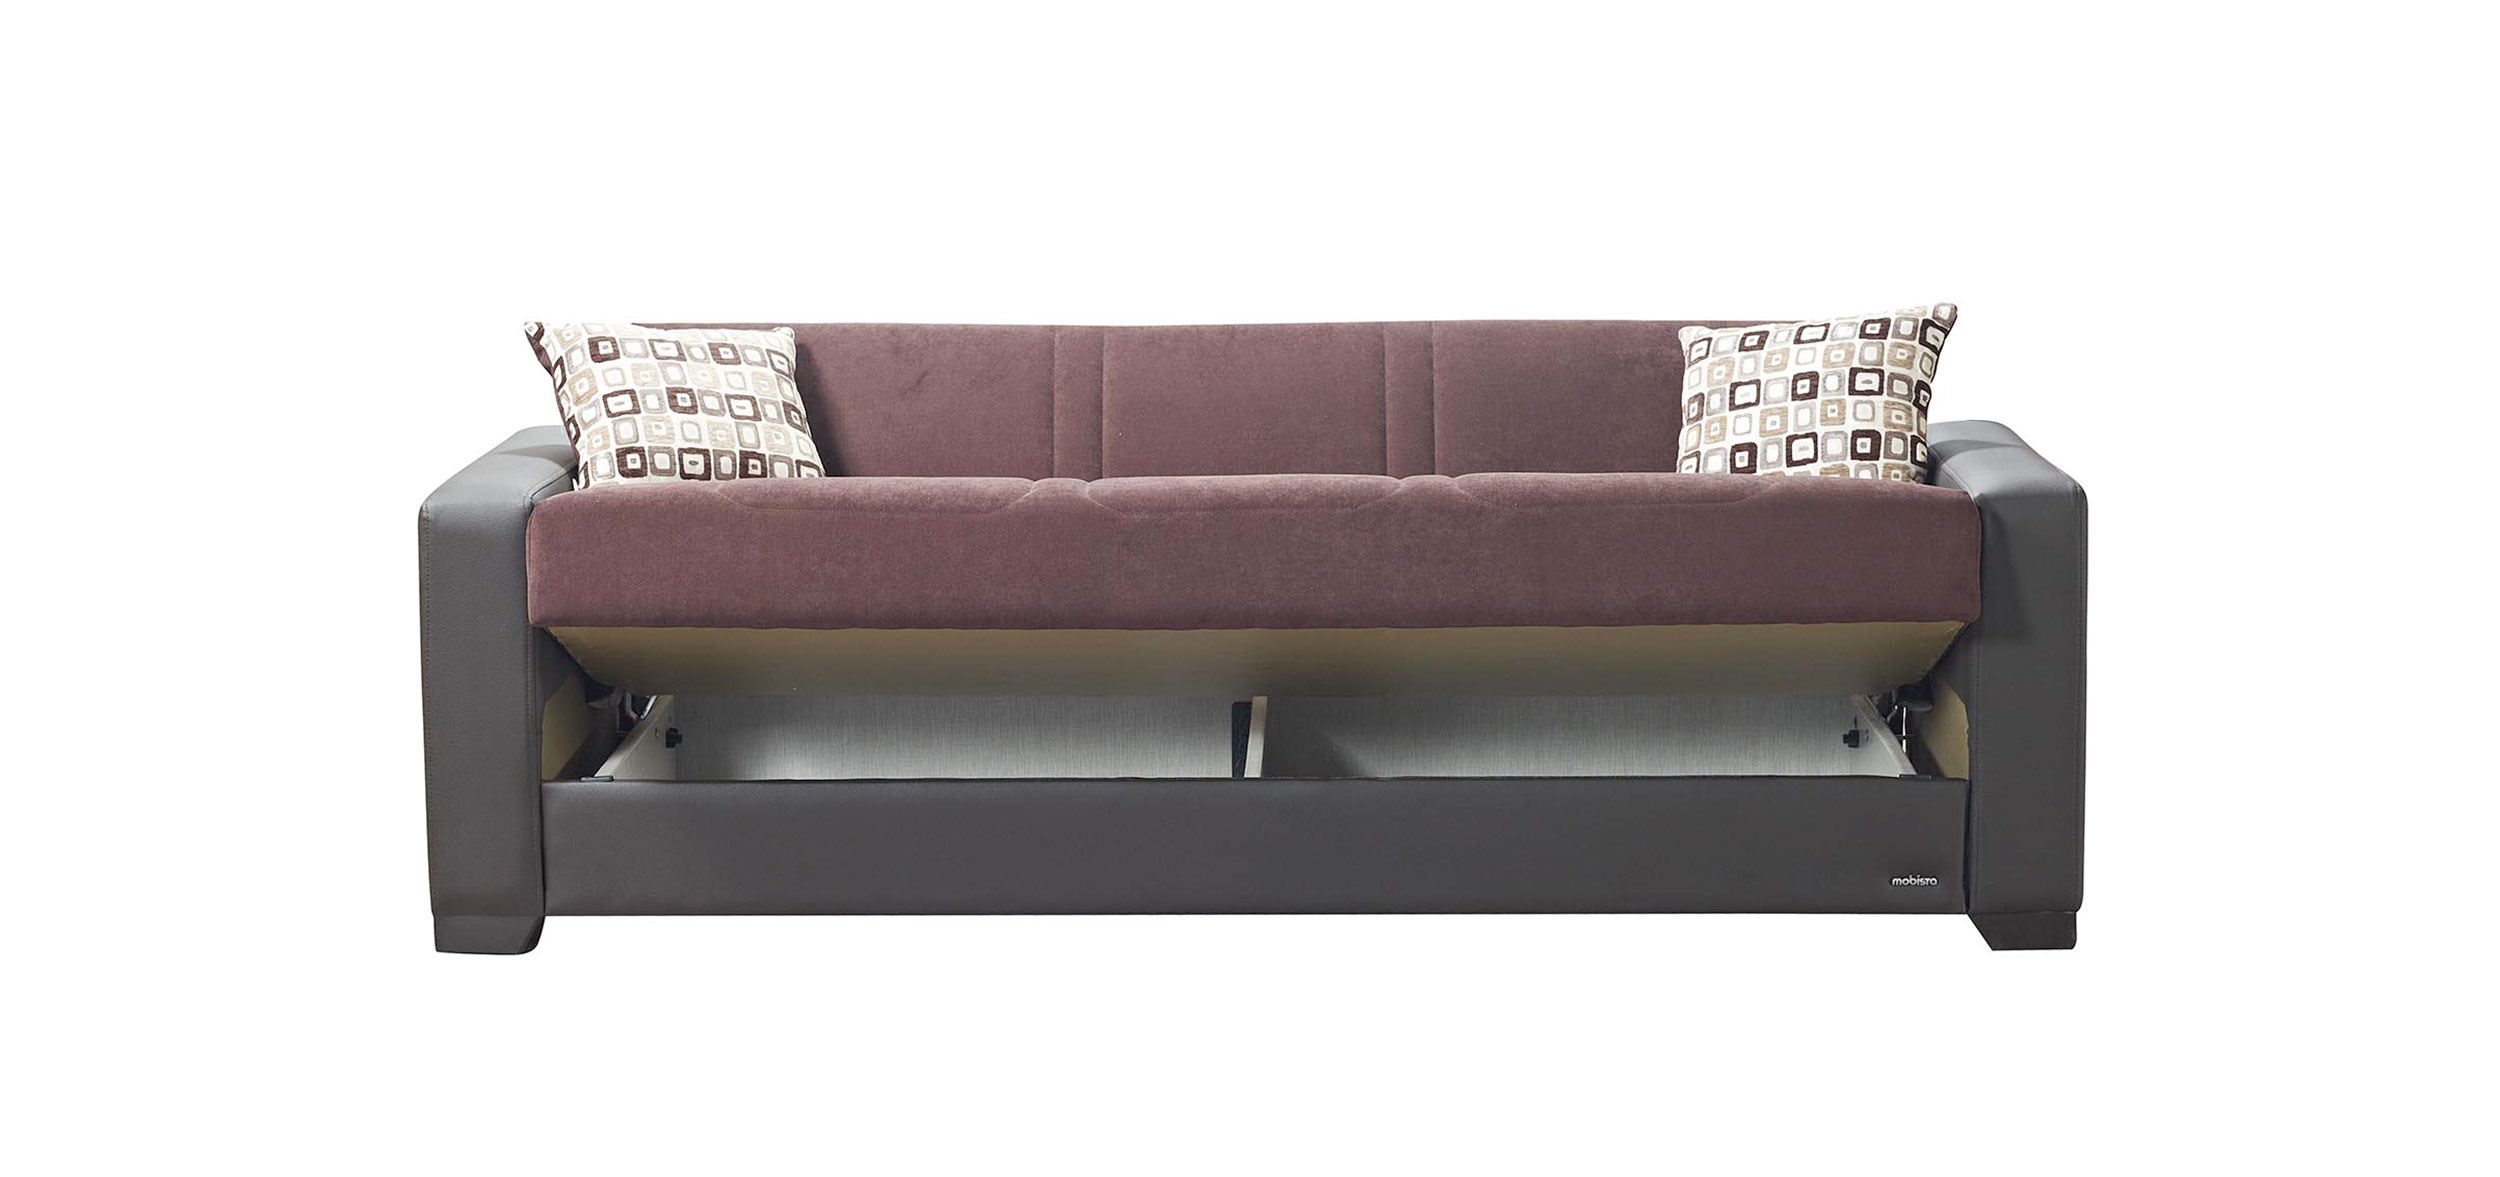 Relaxon Carisma Chocolate Sofa Bed by Mobista